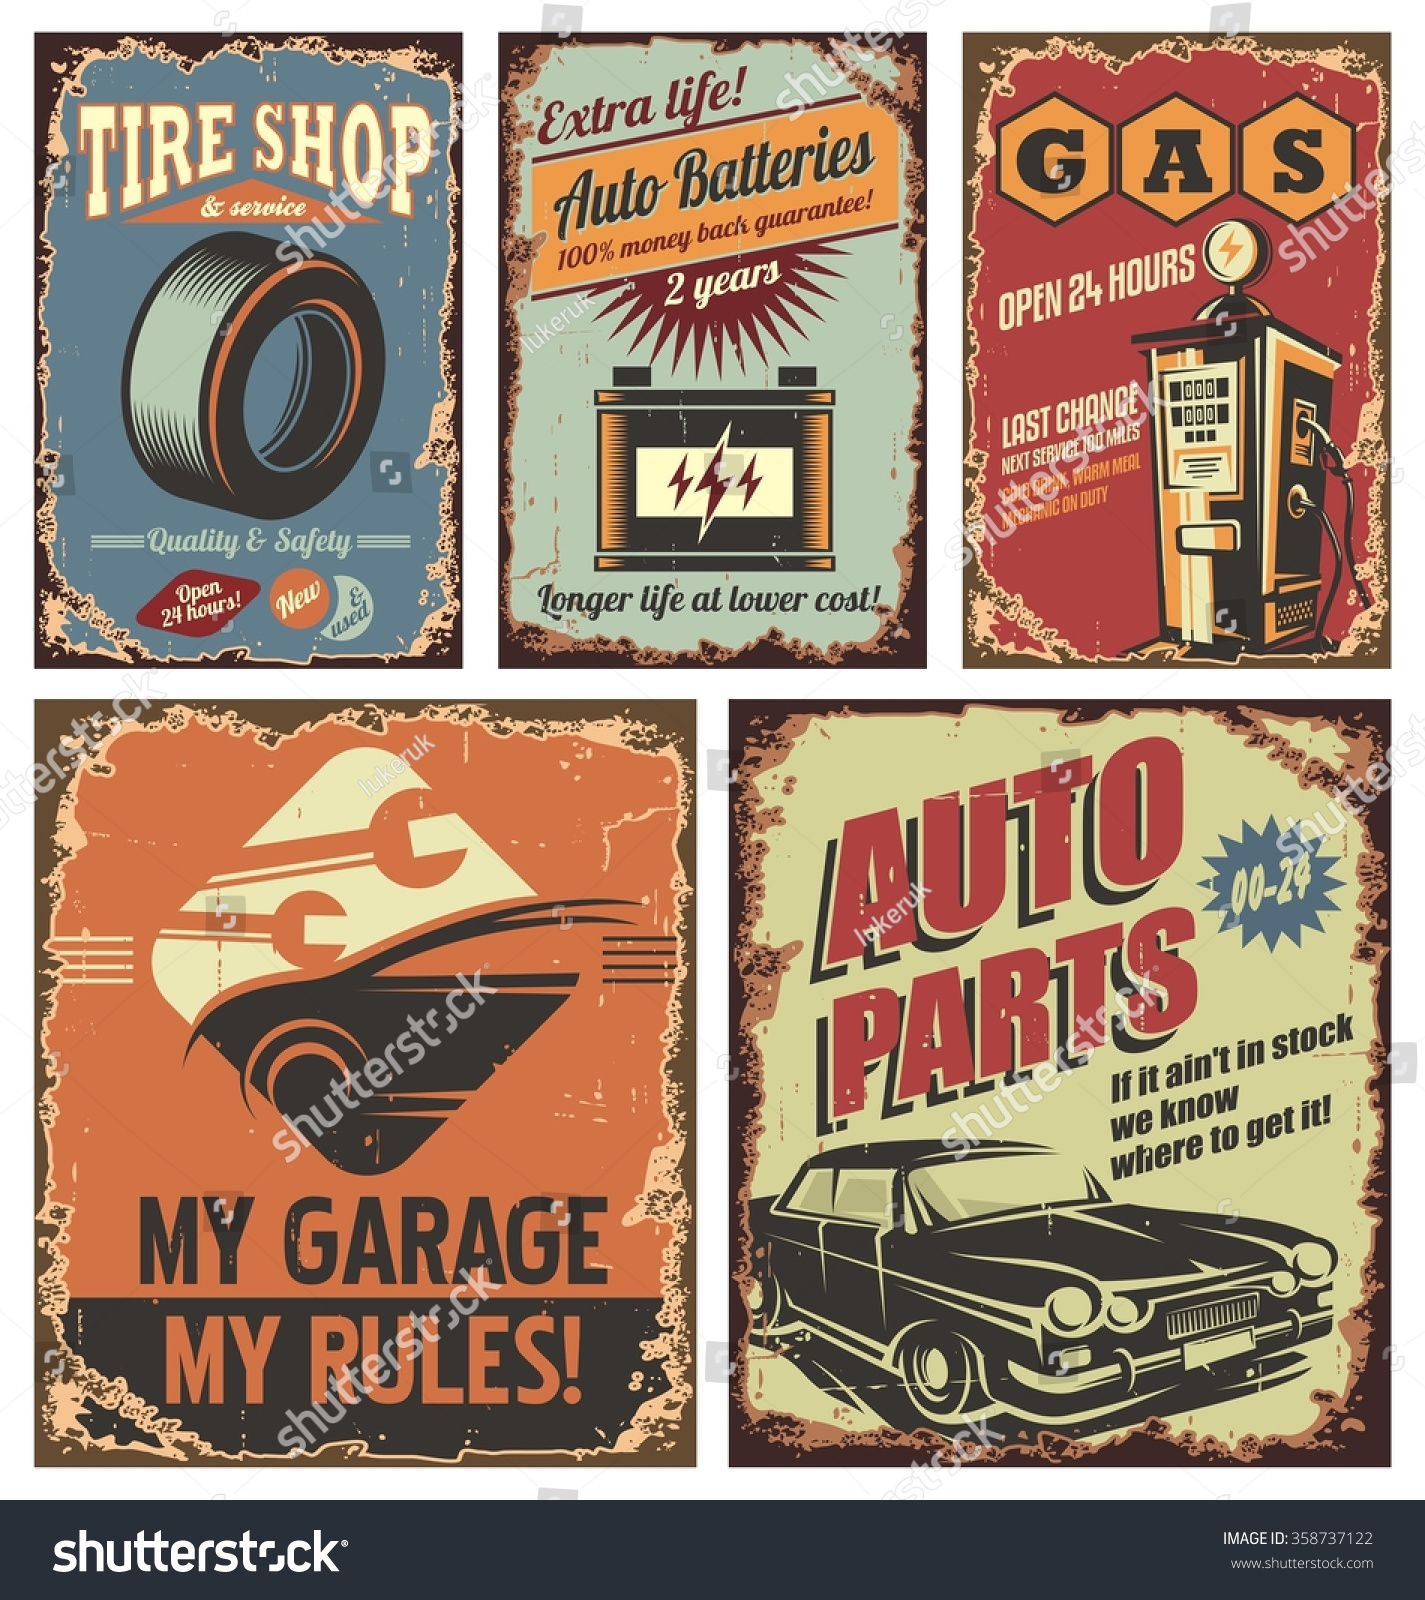 Old Vintage Car Signs : Vintage car service tin signs posters stock vector